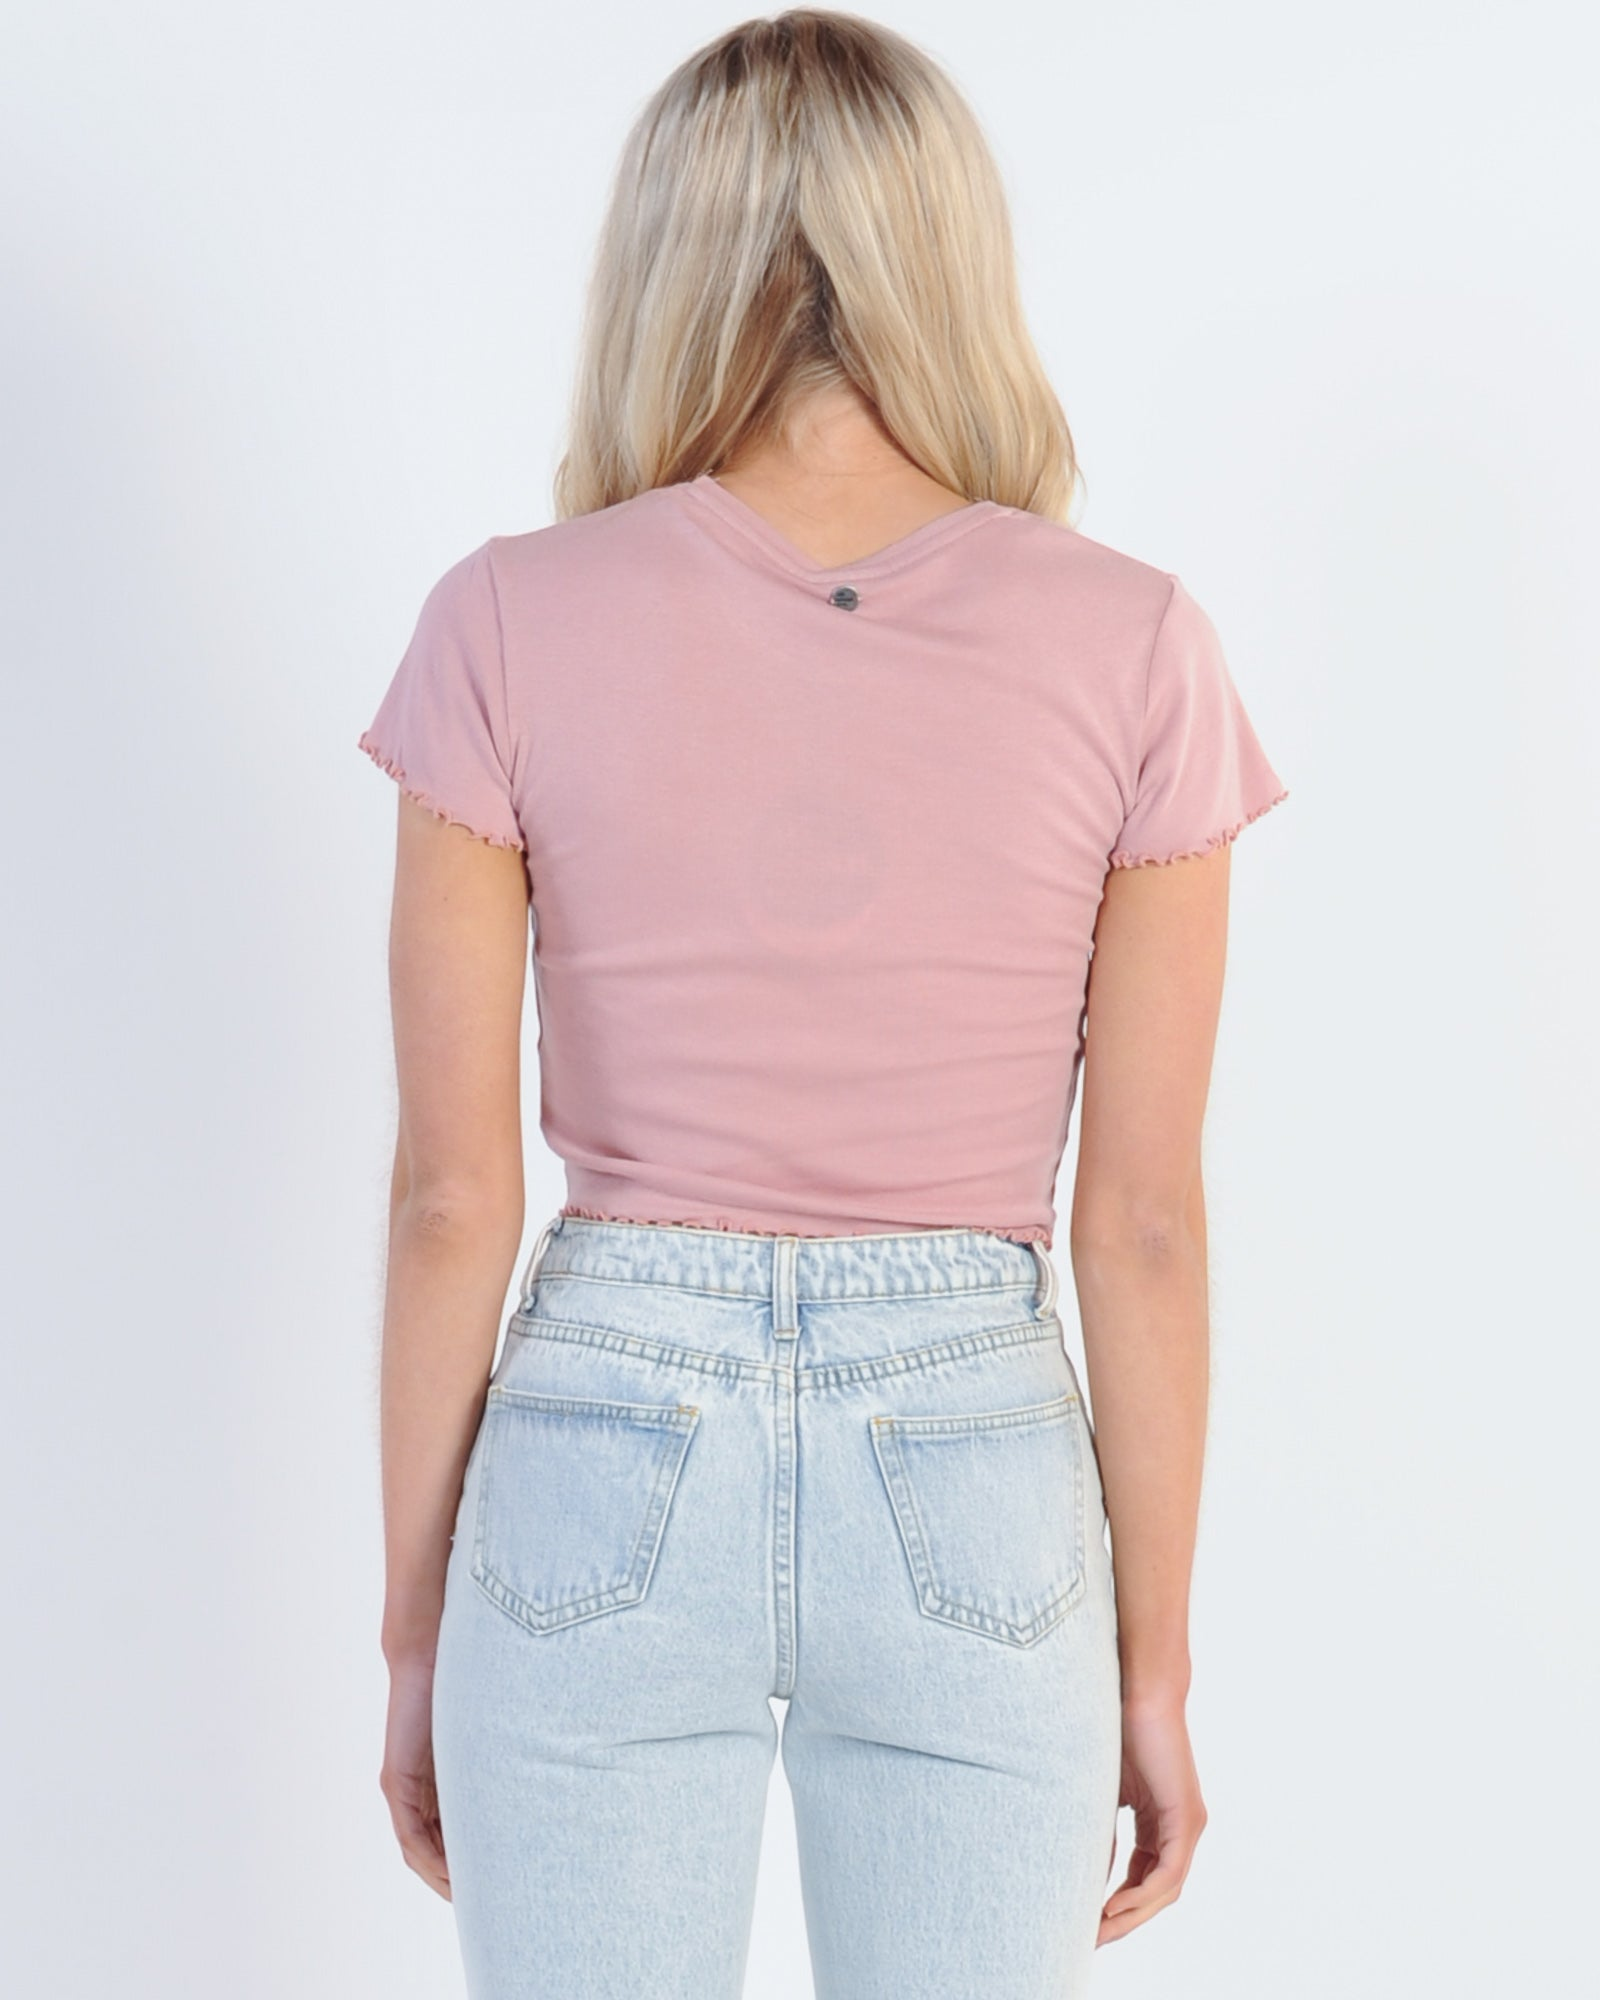 All About Eve Take You Away Tee - Pink